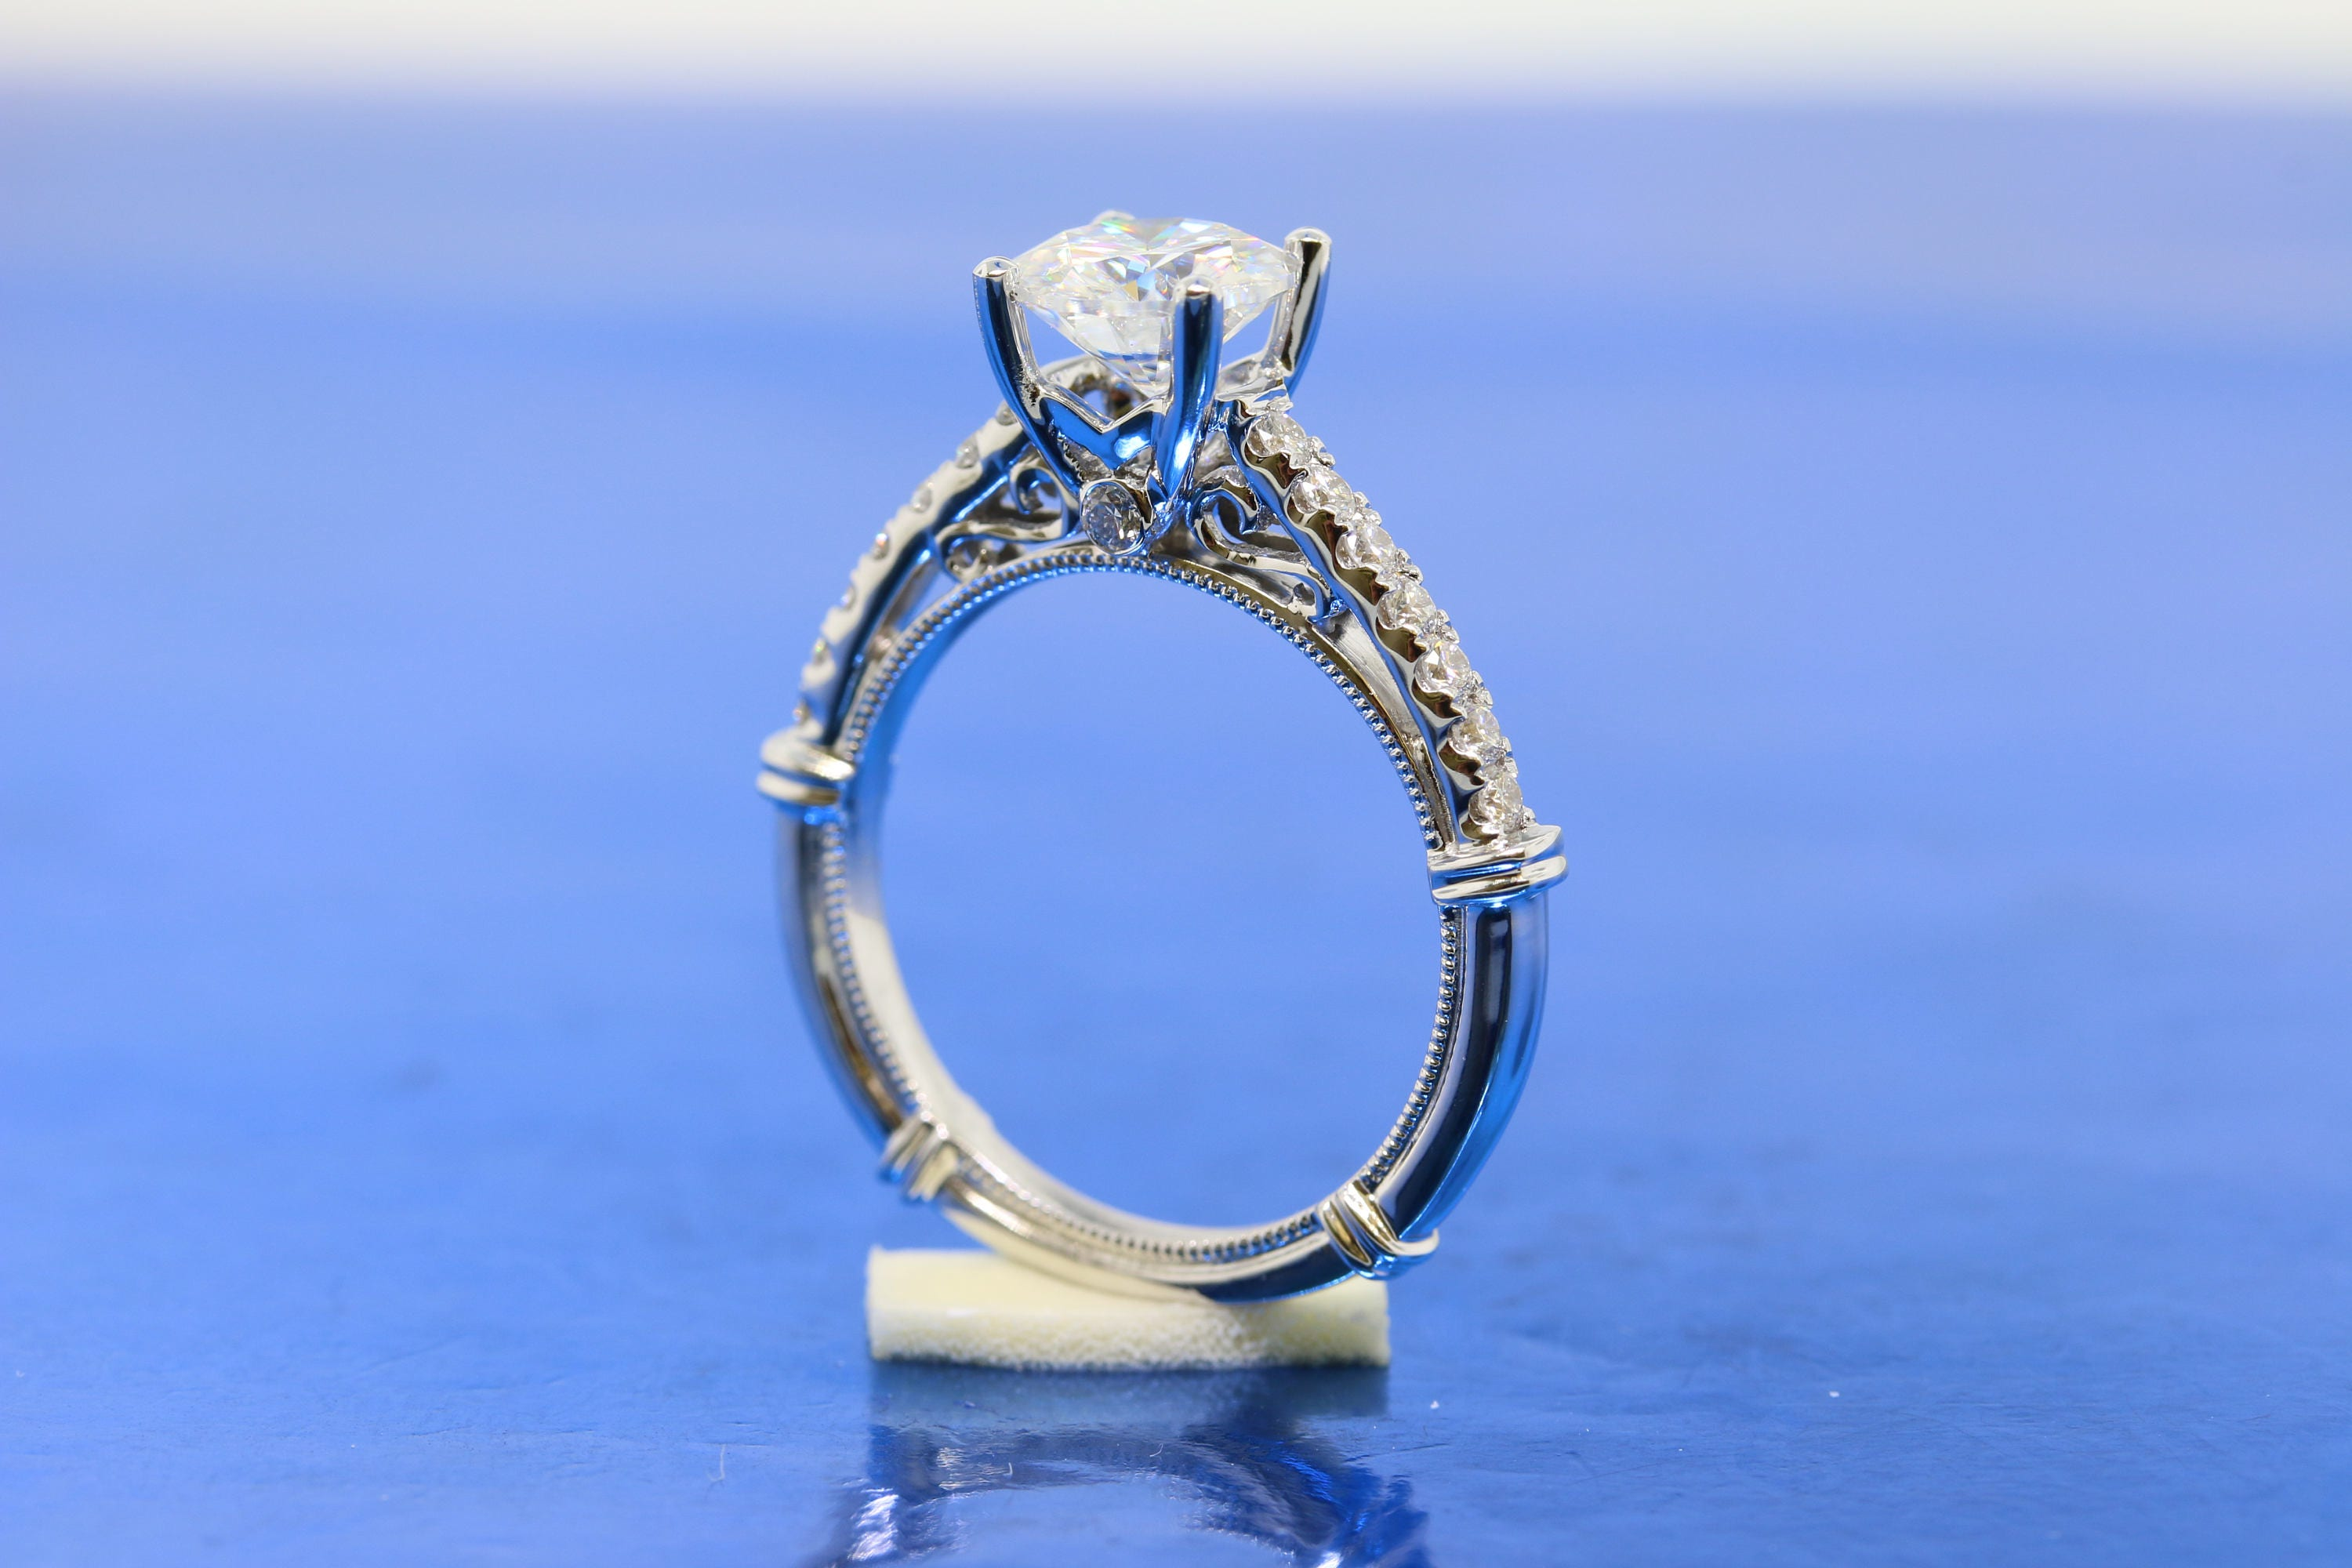 c138317371558 Vintage Inspired Round 7mm Forever One Moissanite Engagement Ring,  Cathedral Setting With Pave Band In 18k White Gold.